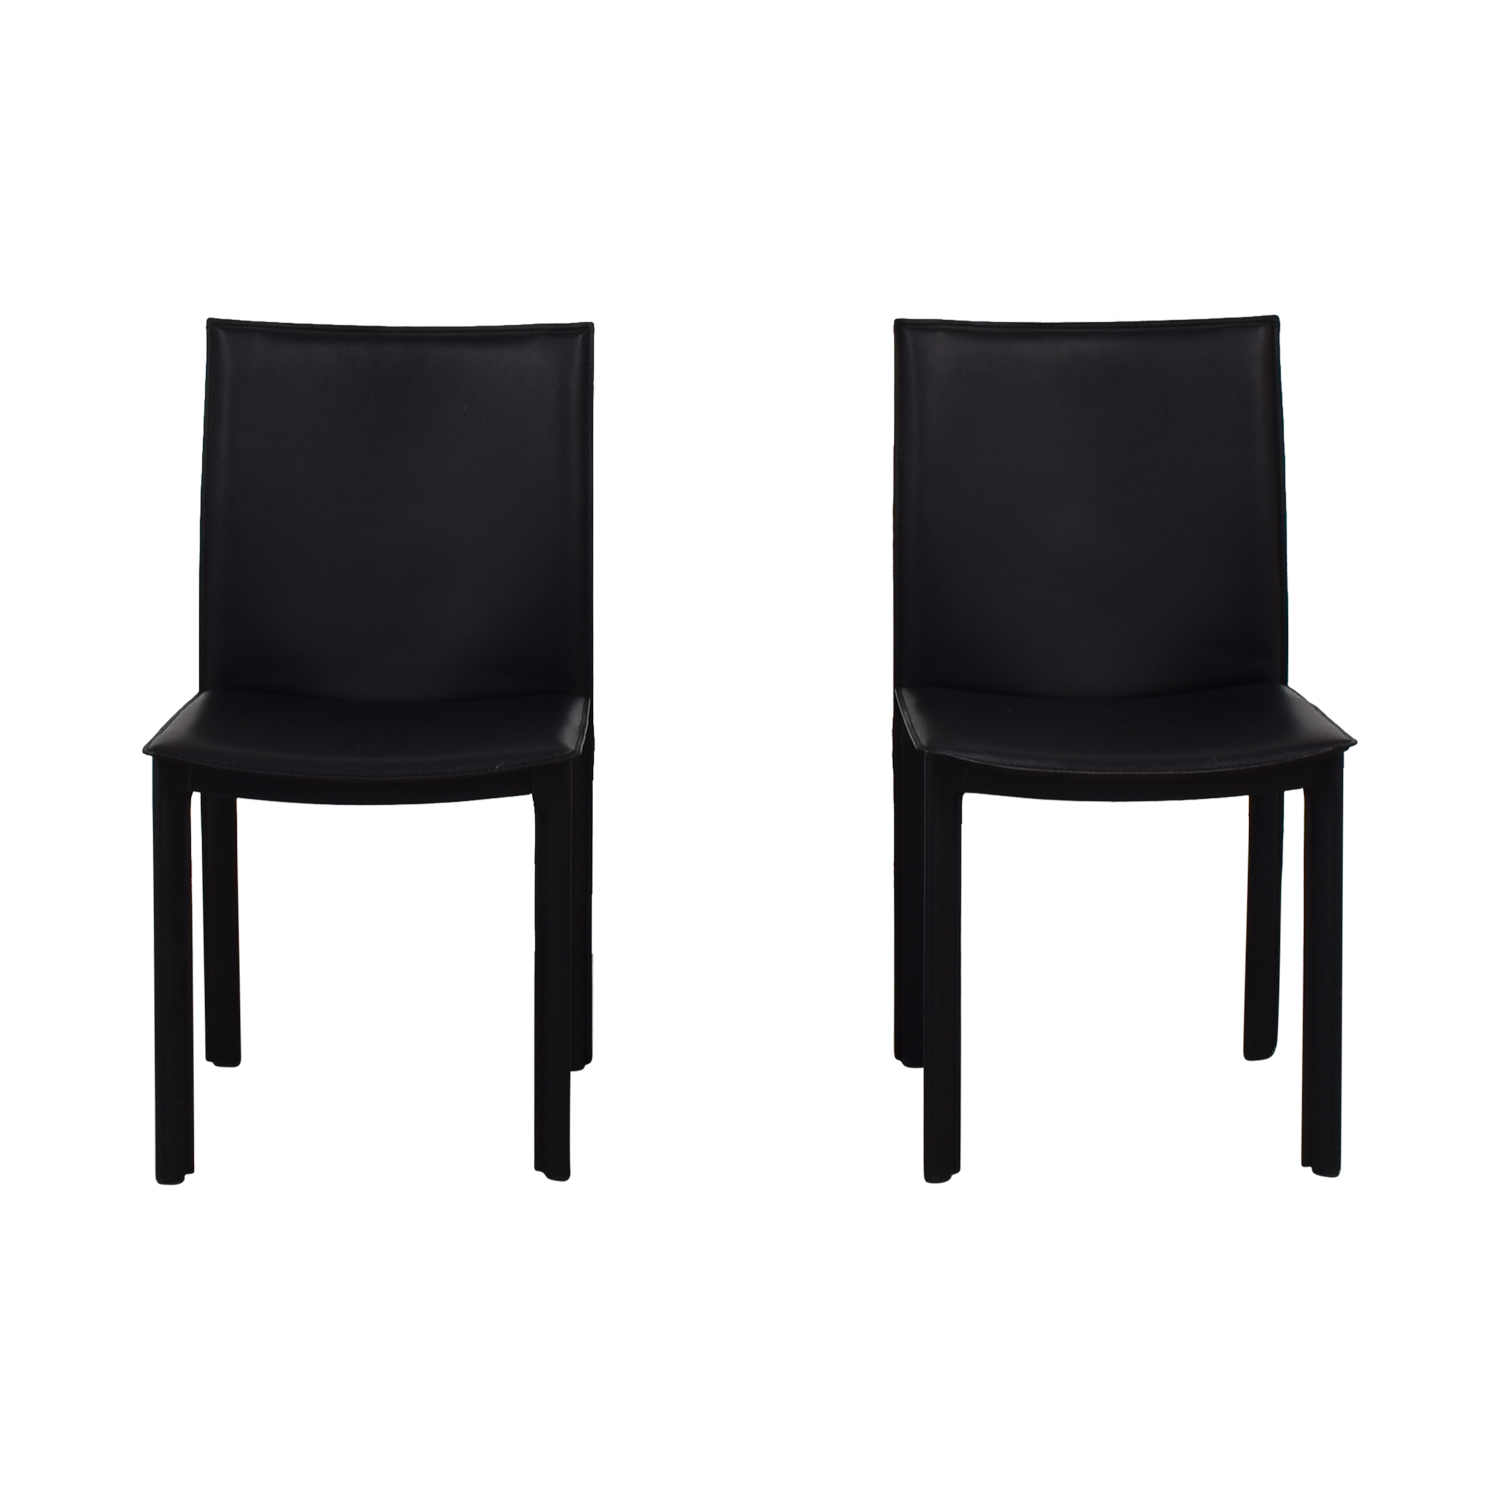 buy  Black Leather Chairs online